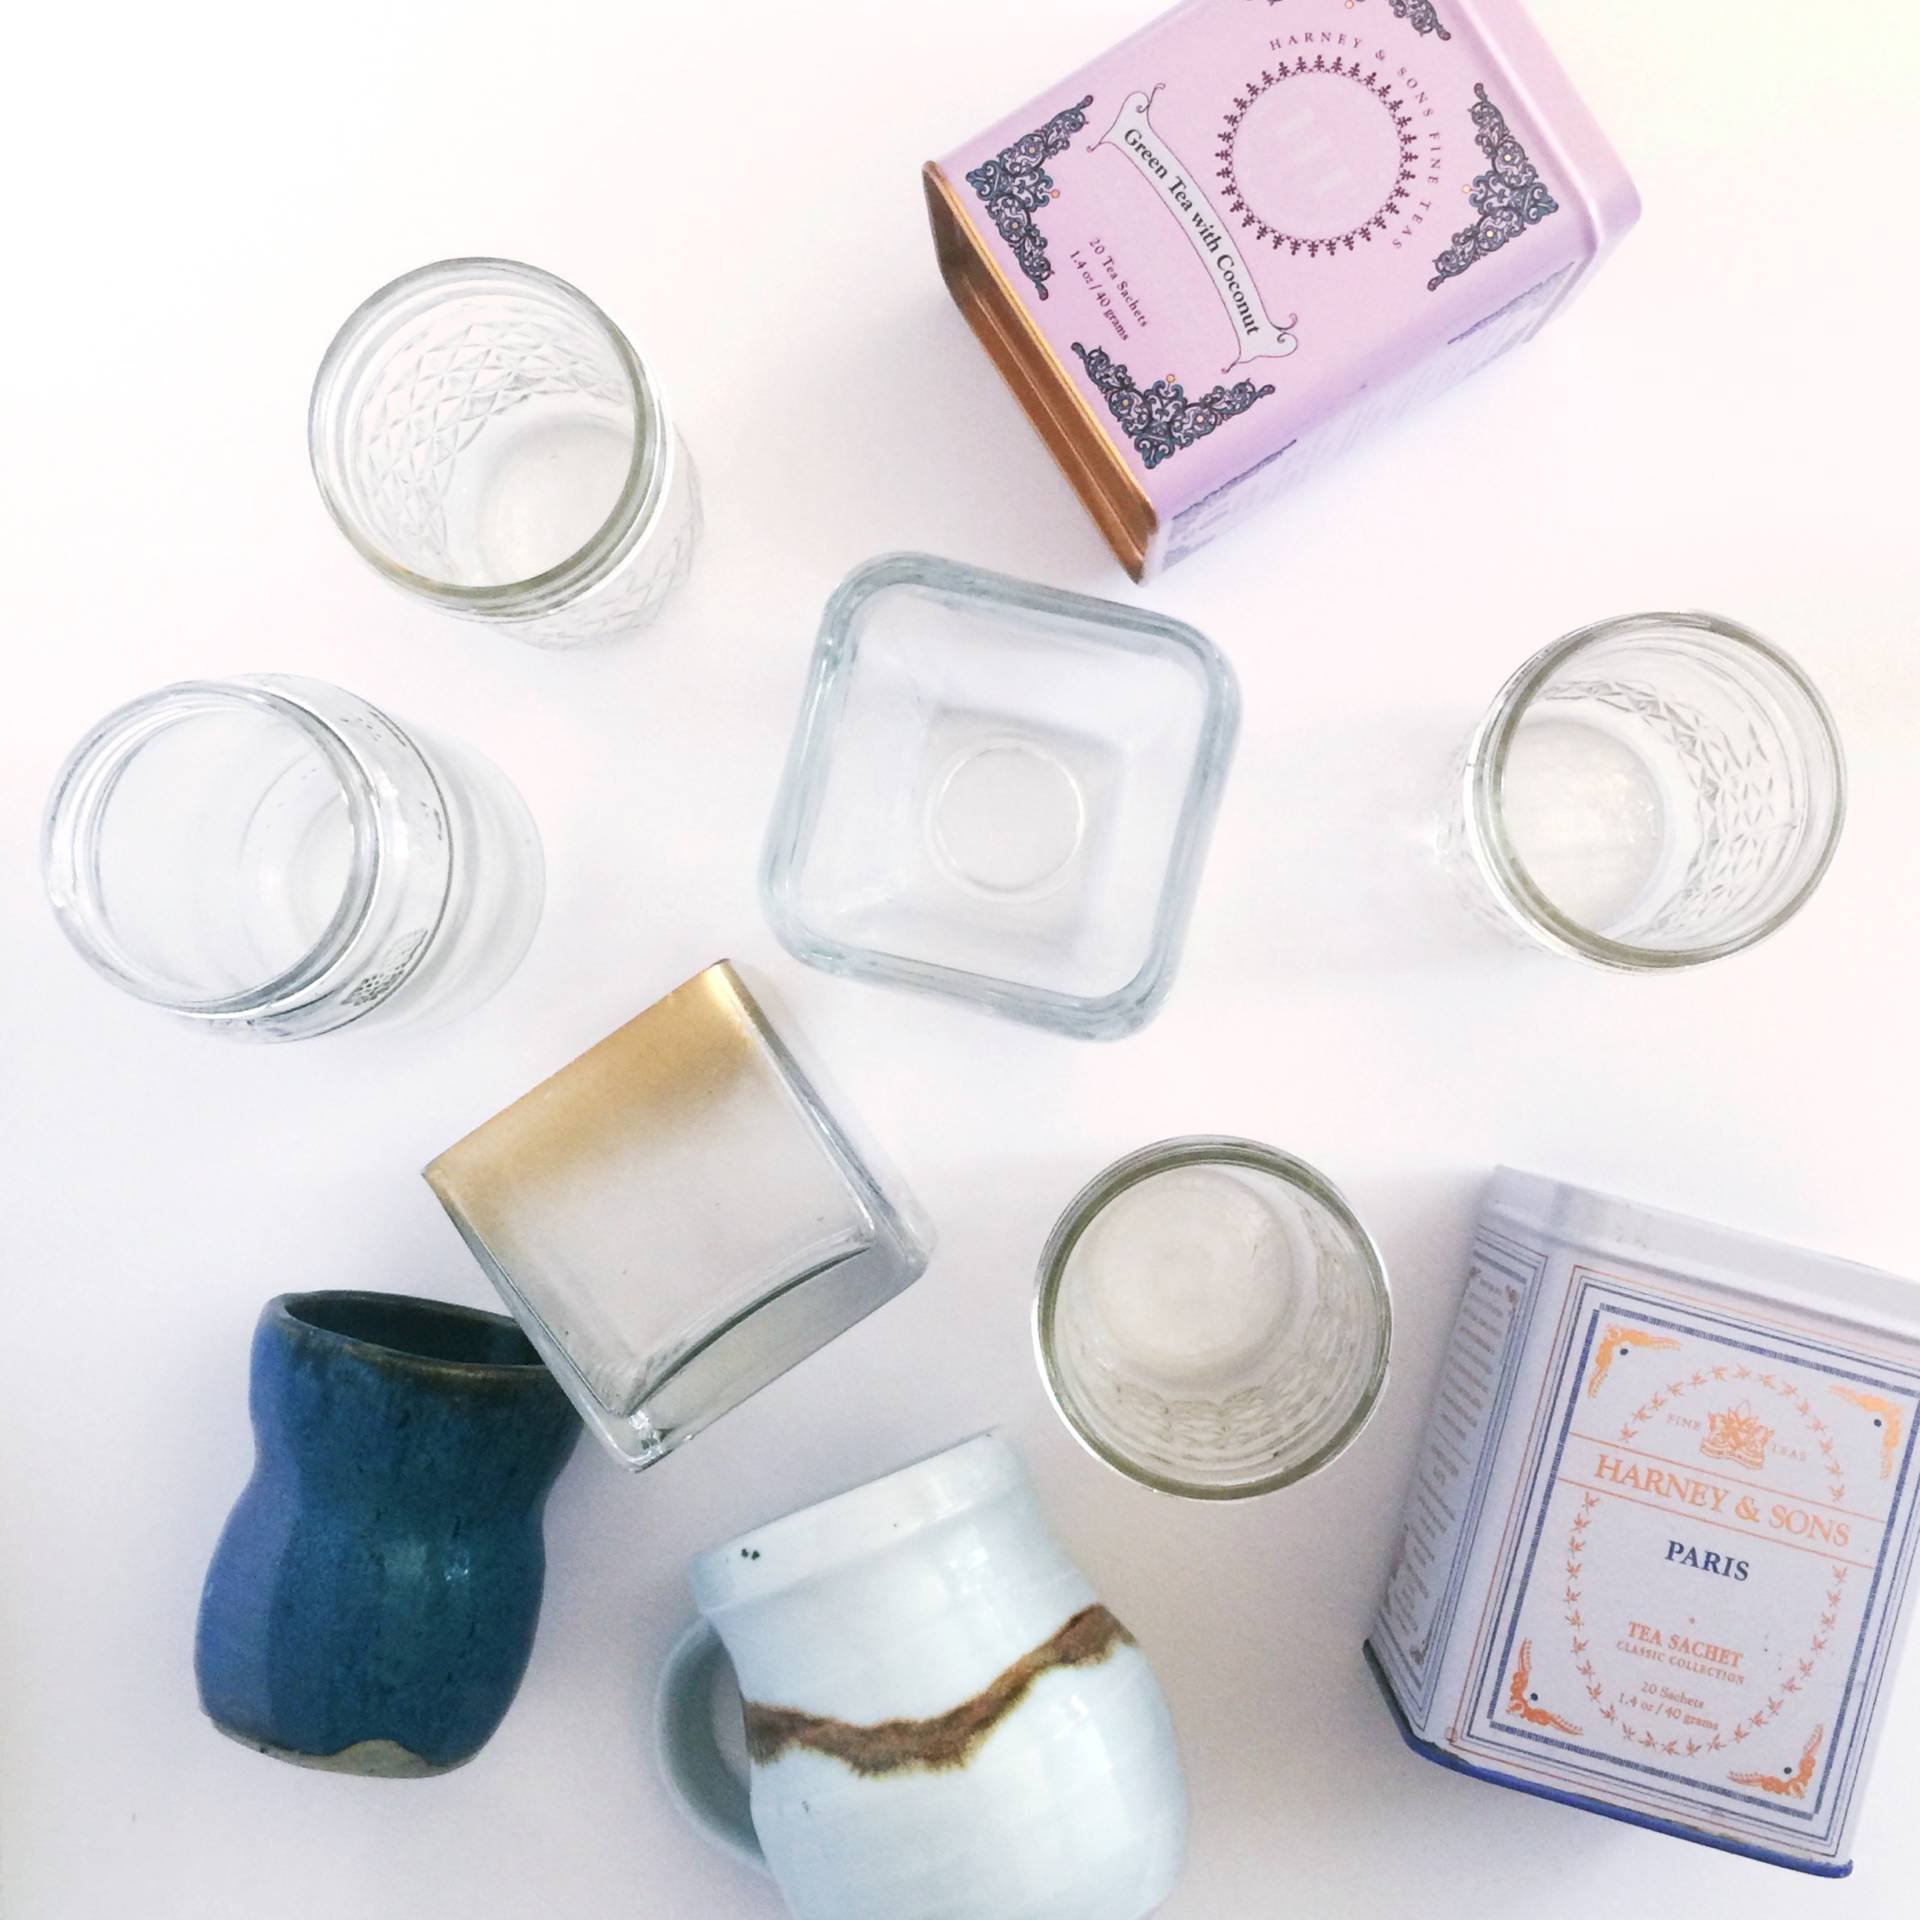 used lots of pretty containers from around my house to make some new candles